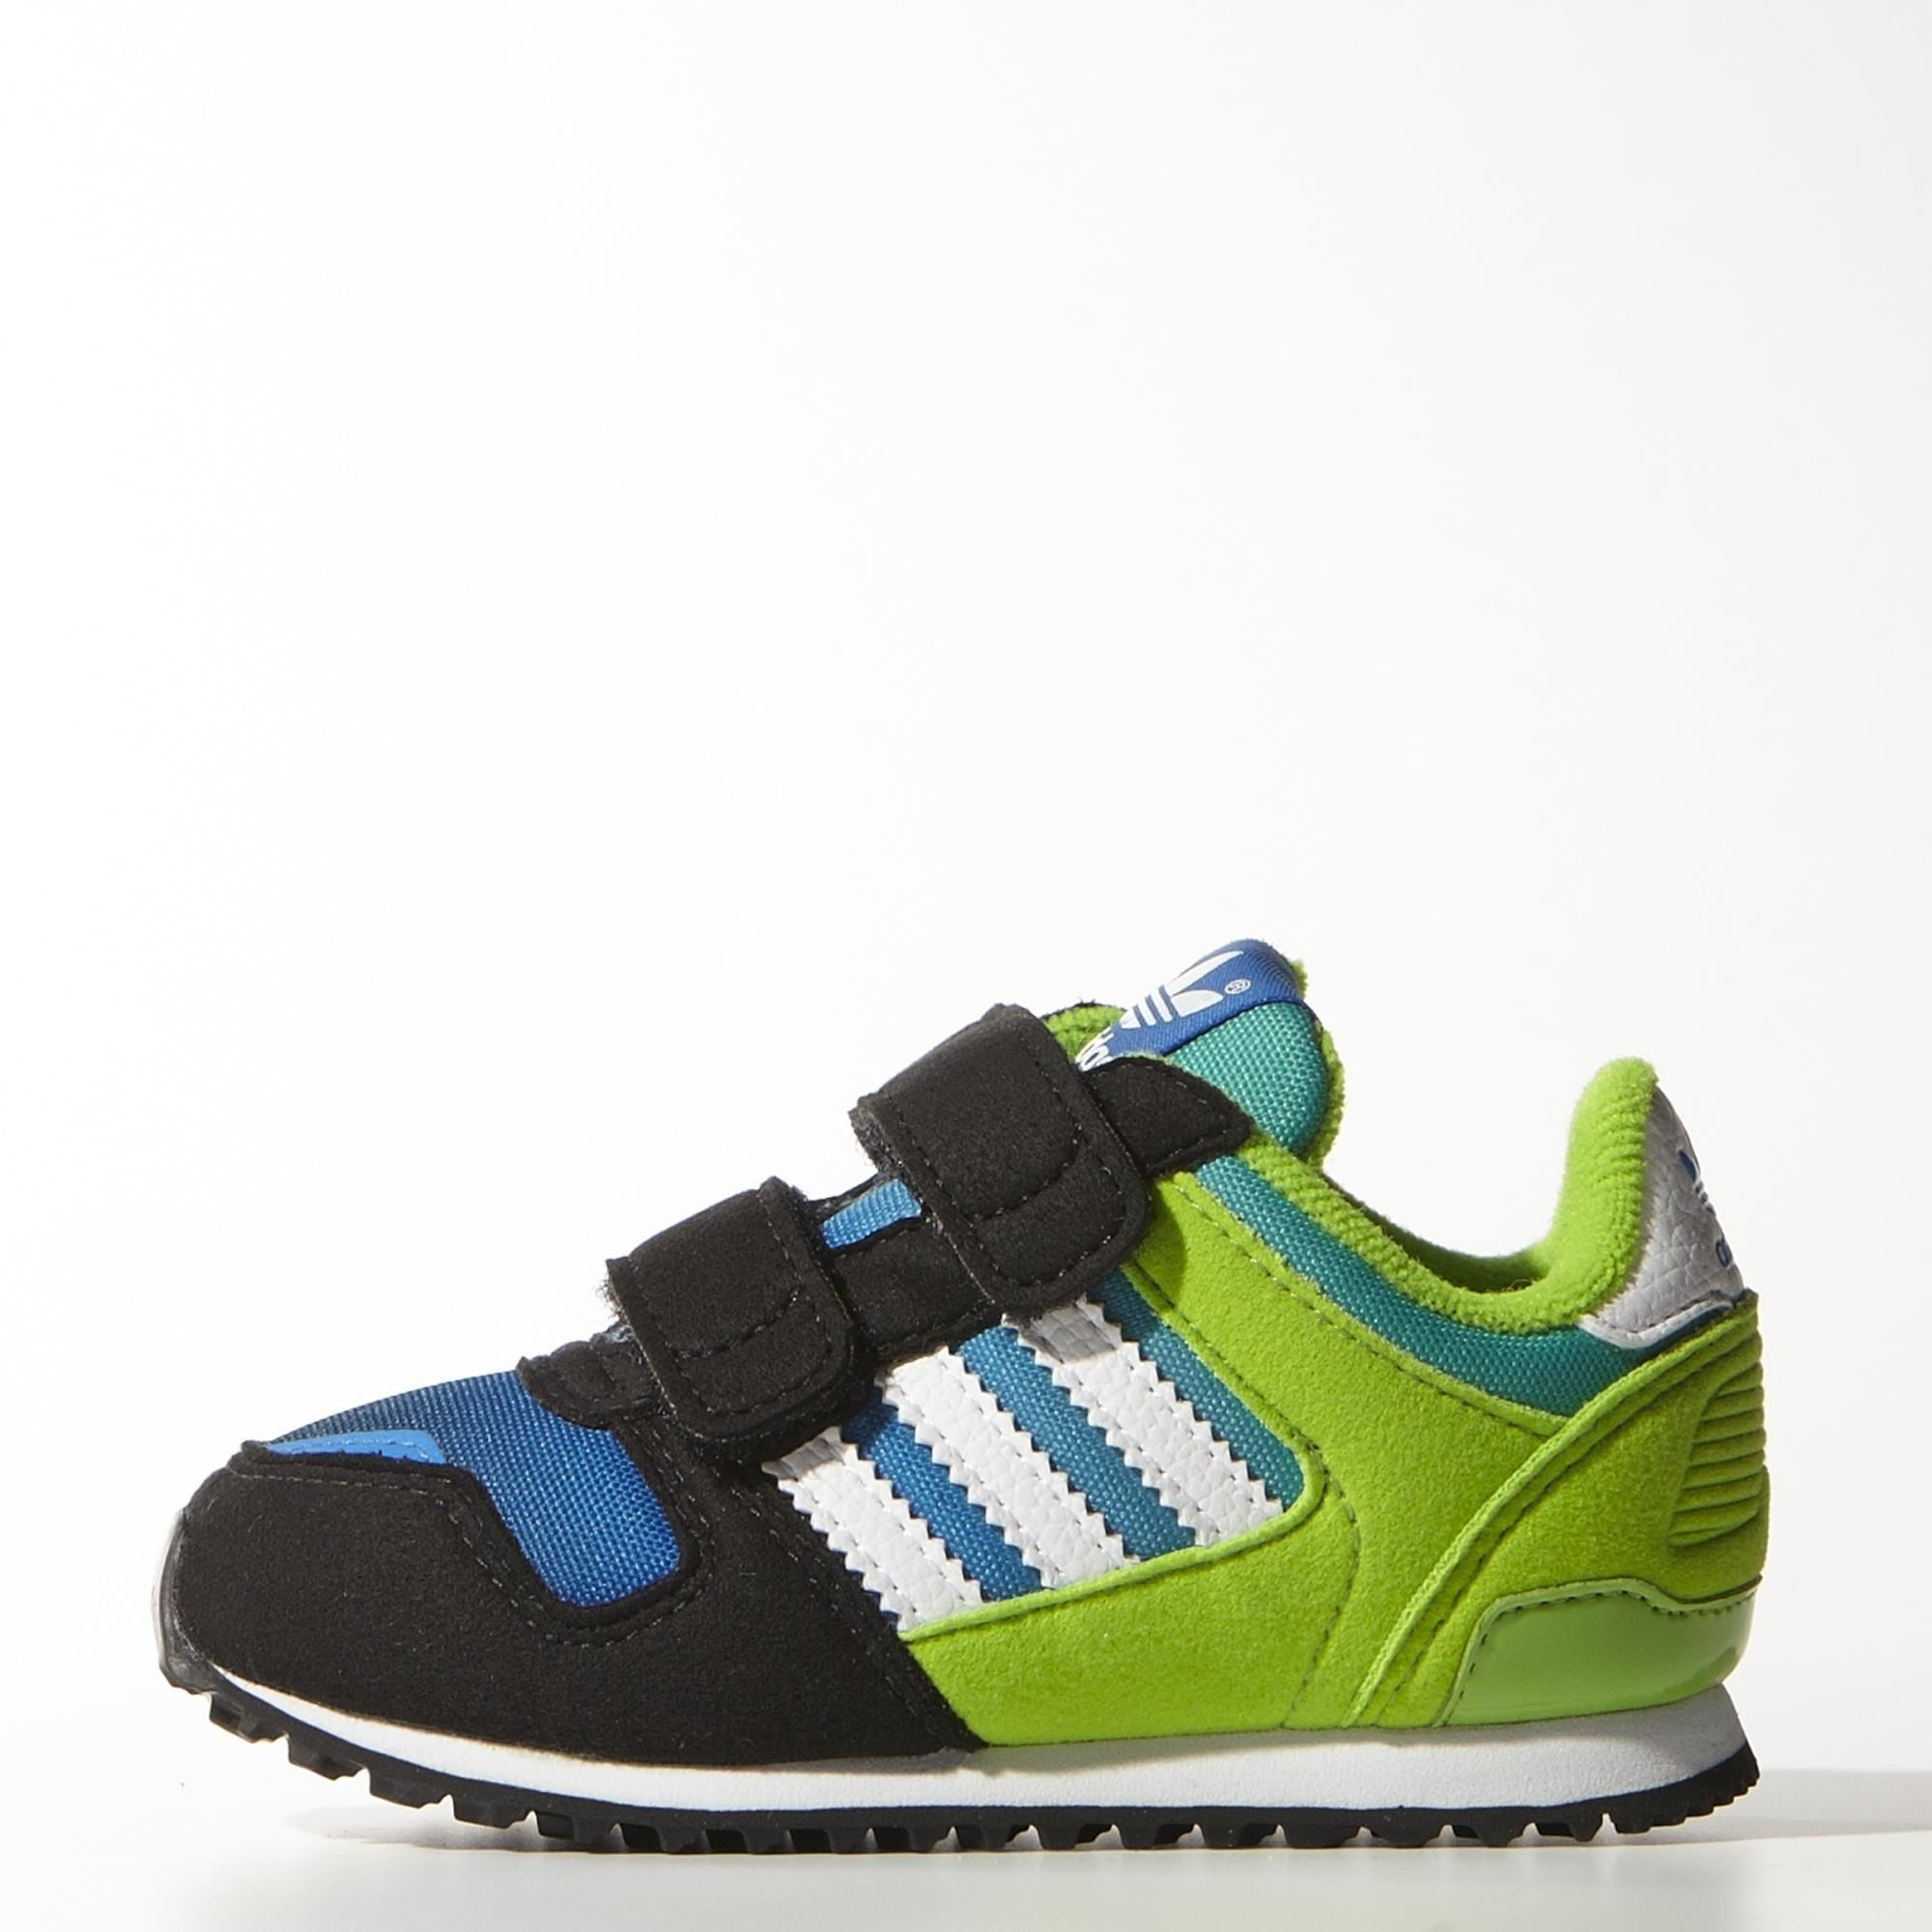 a0ed2de9c642b adidas ZX 700 CF I Infant Kids Shoes Black White Green Blue M25250 (SIZE   8K)